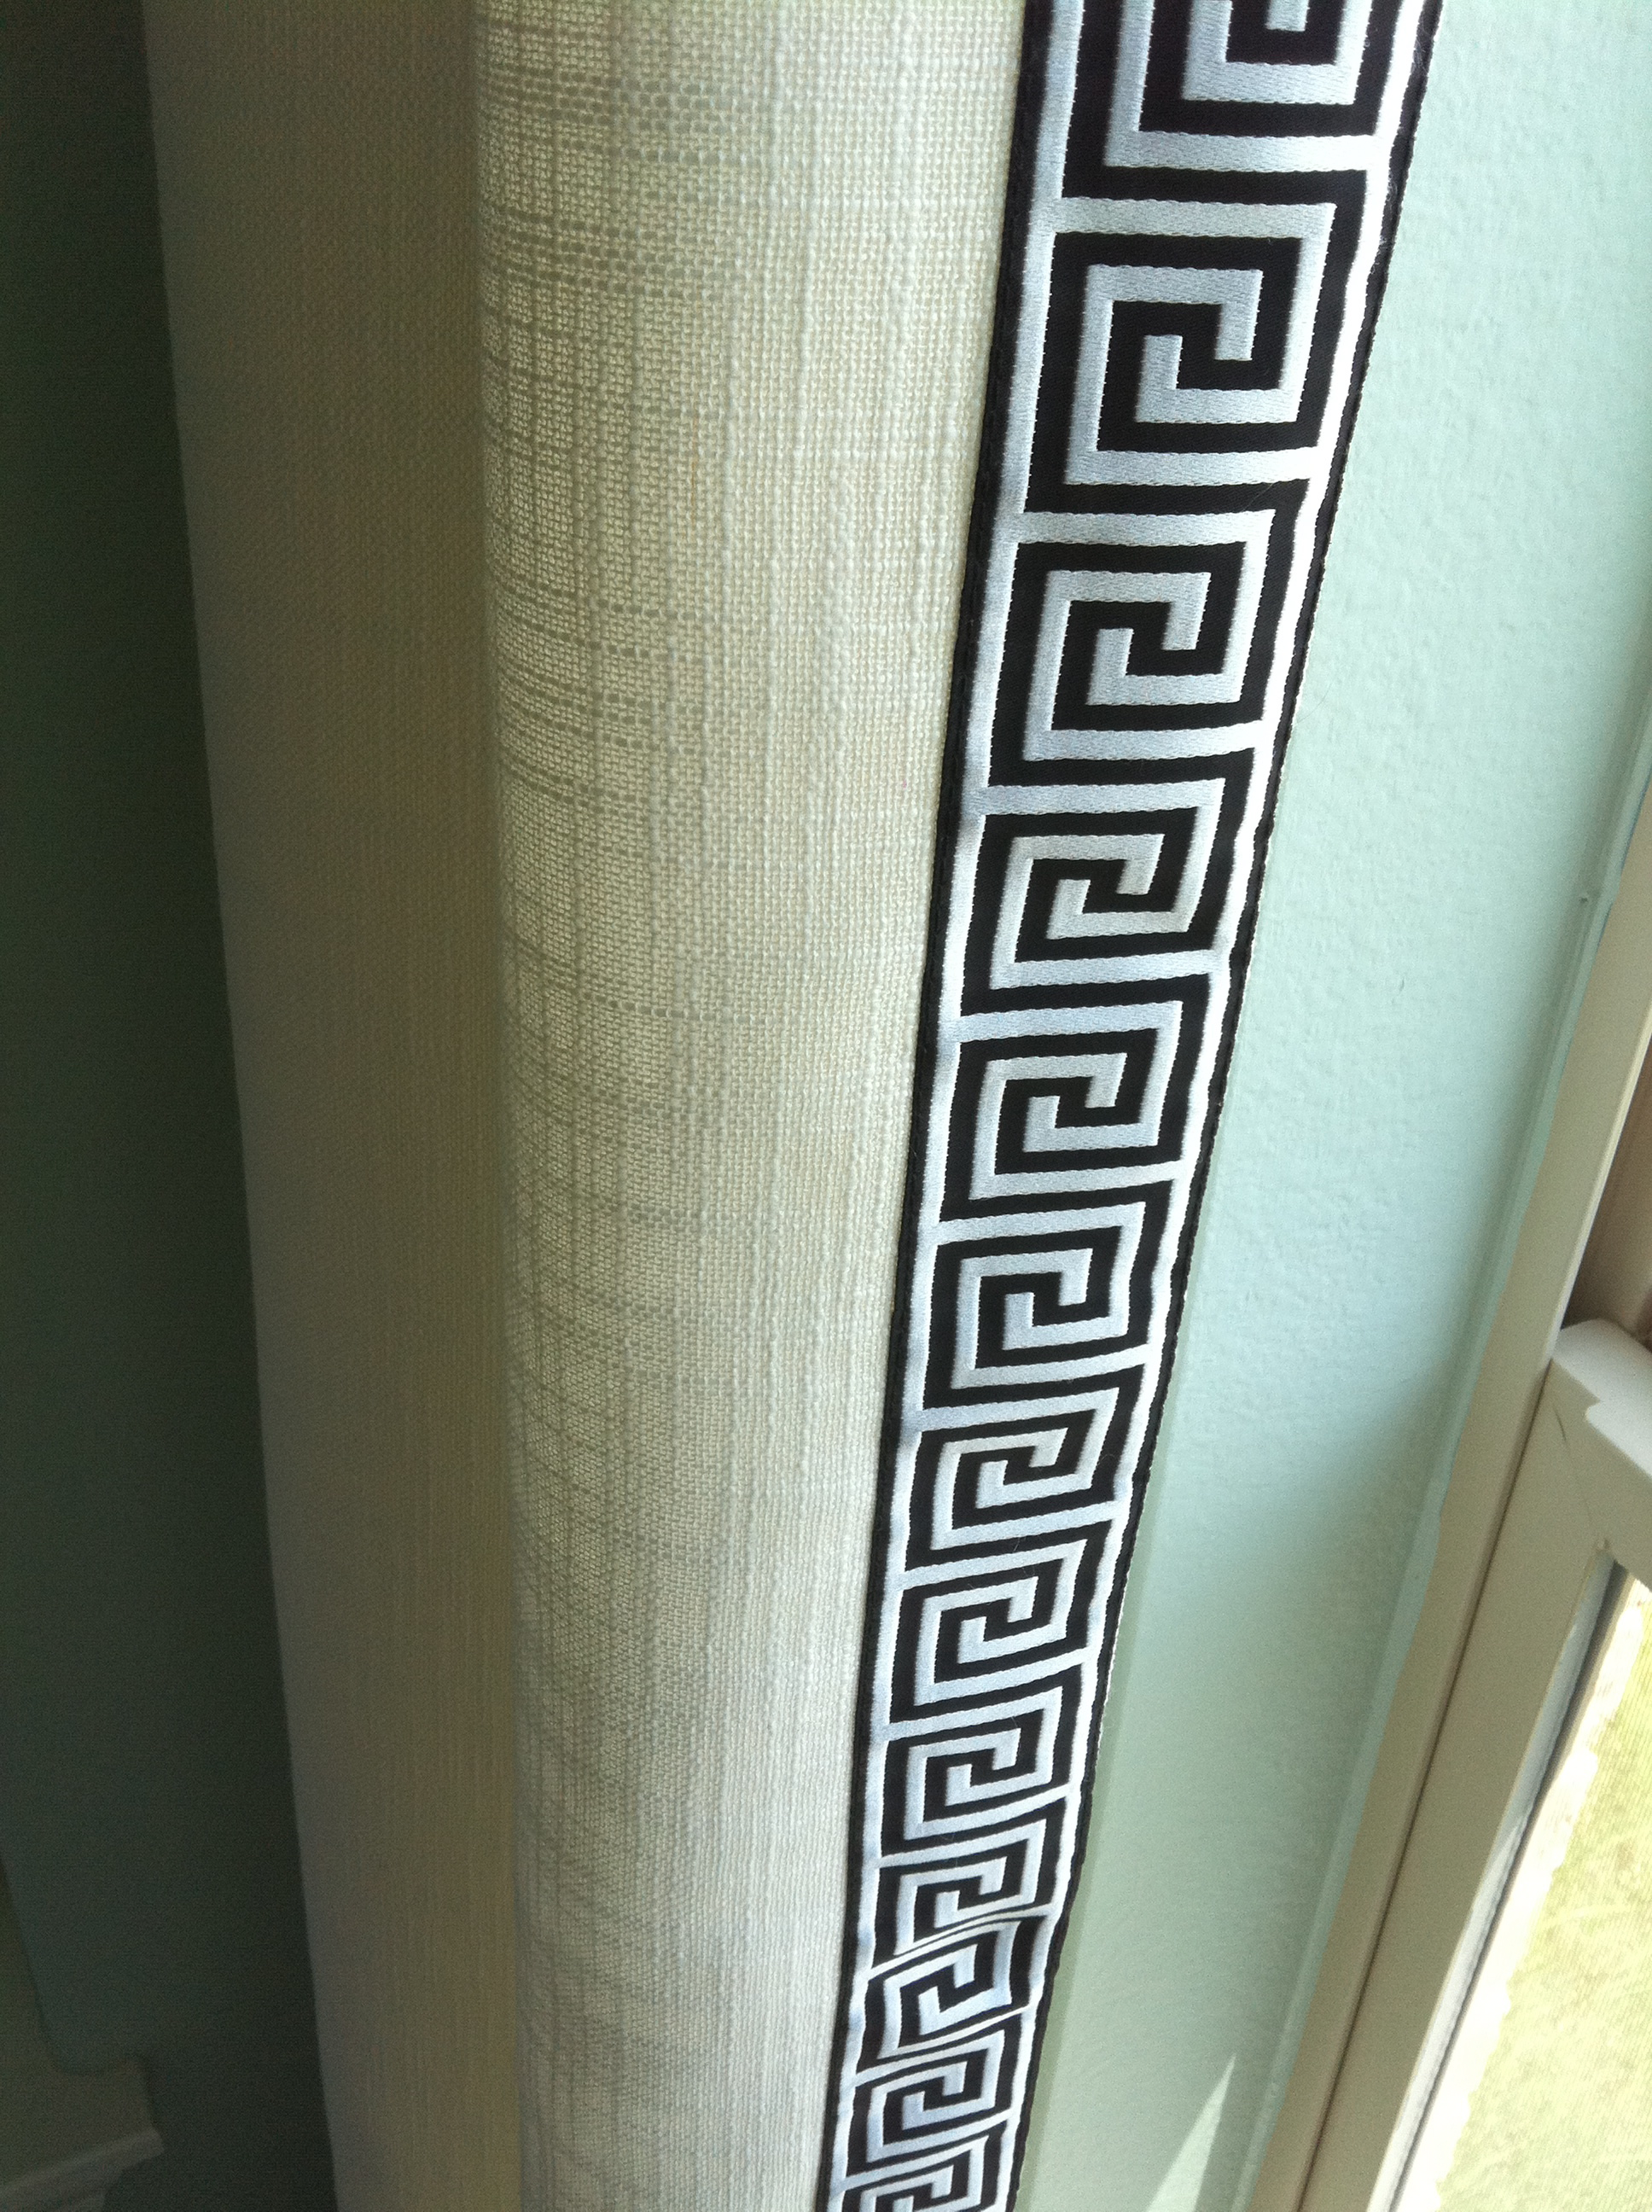 Greek Key Trim On Drapes